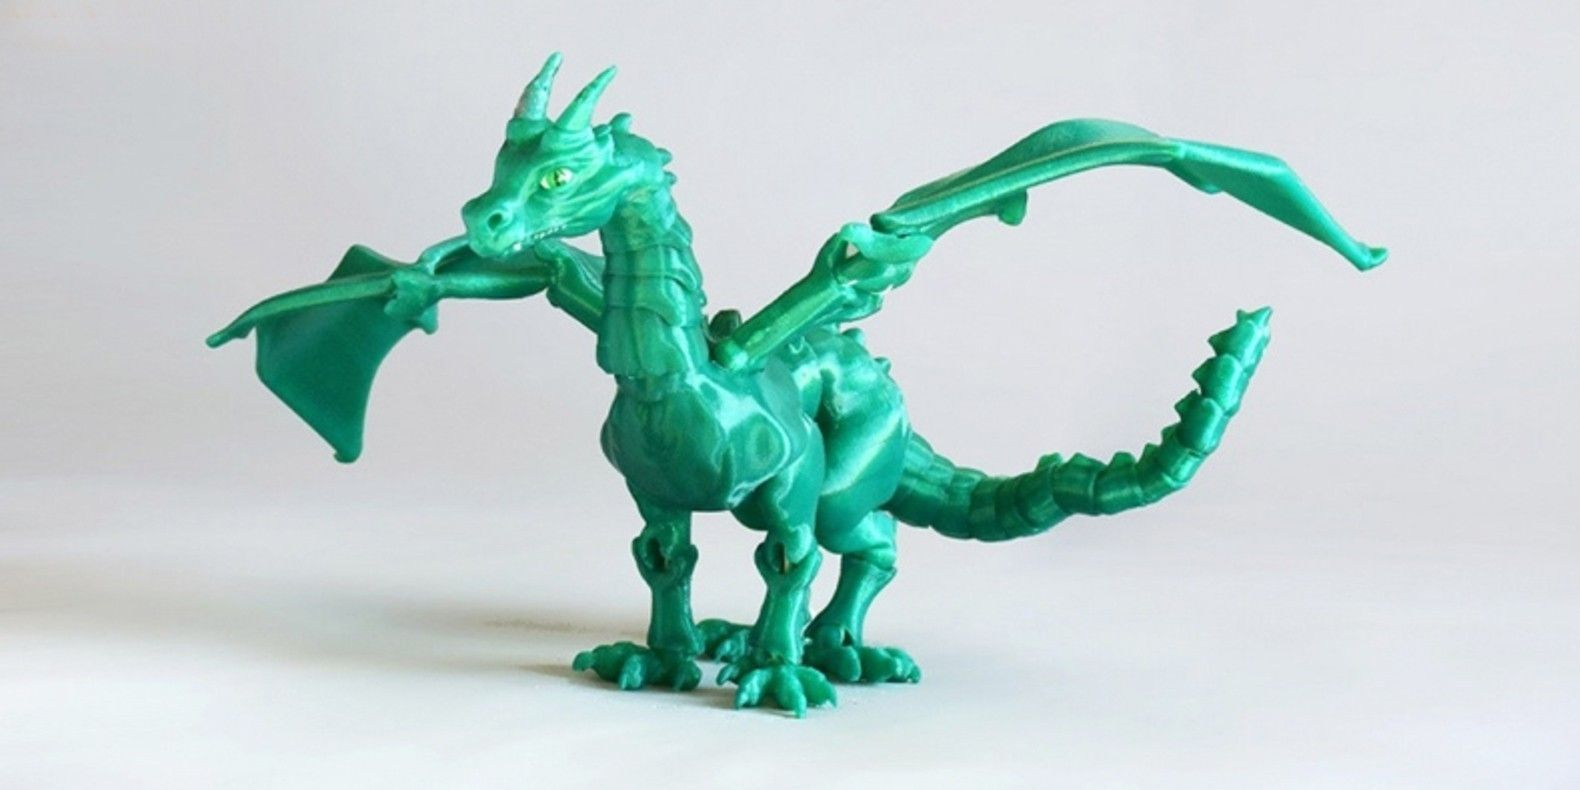 collection best stl files of dragons to make with a 3d printer